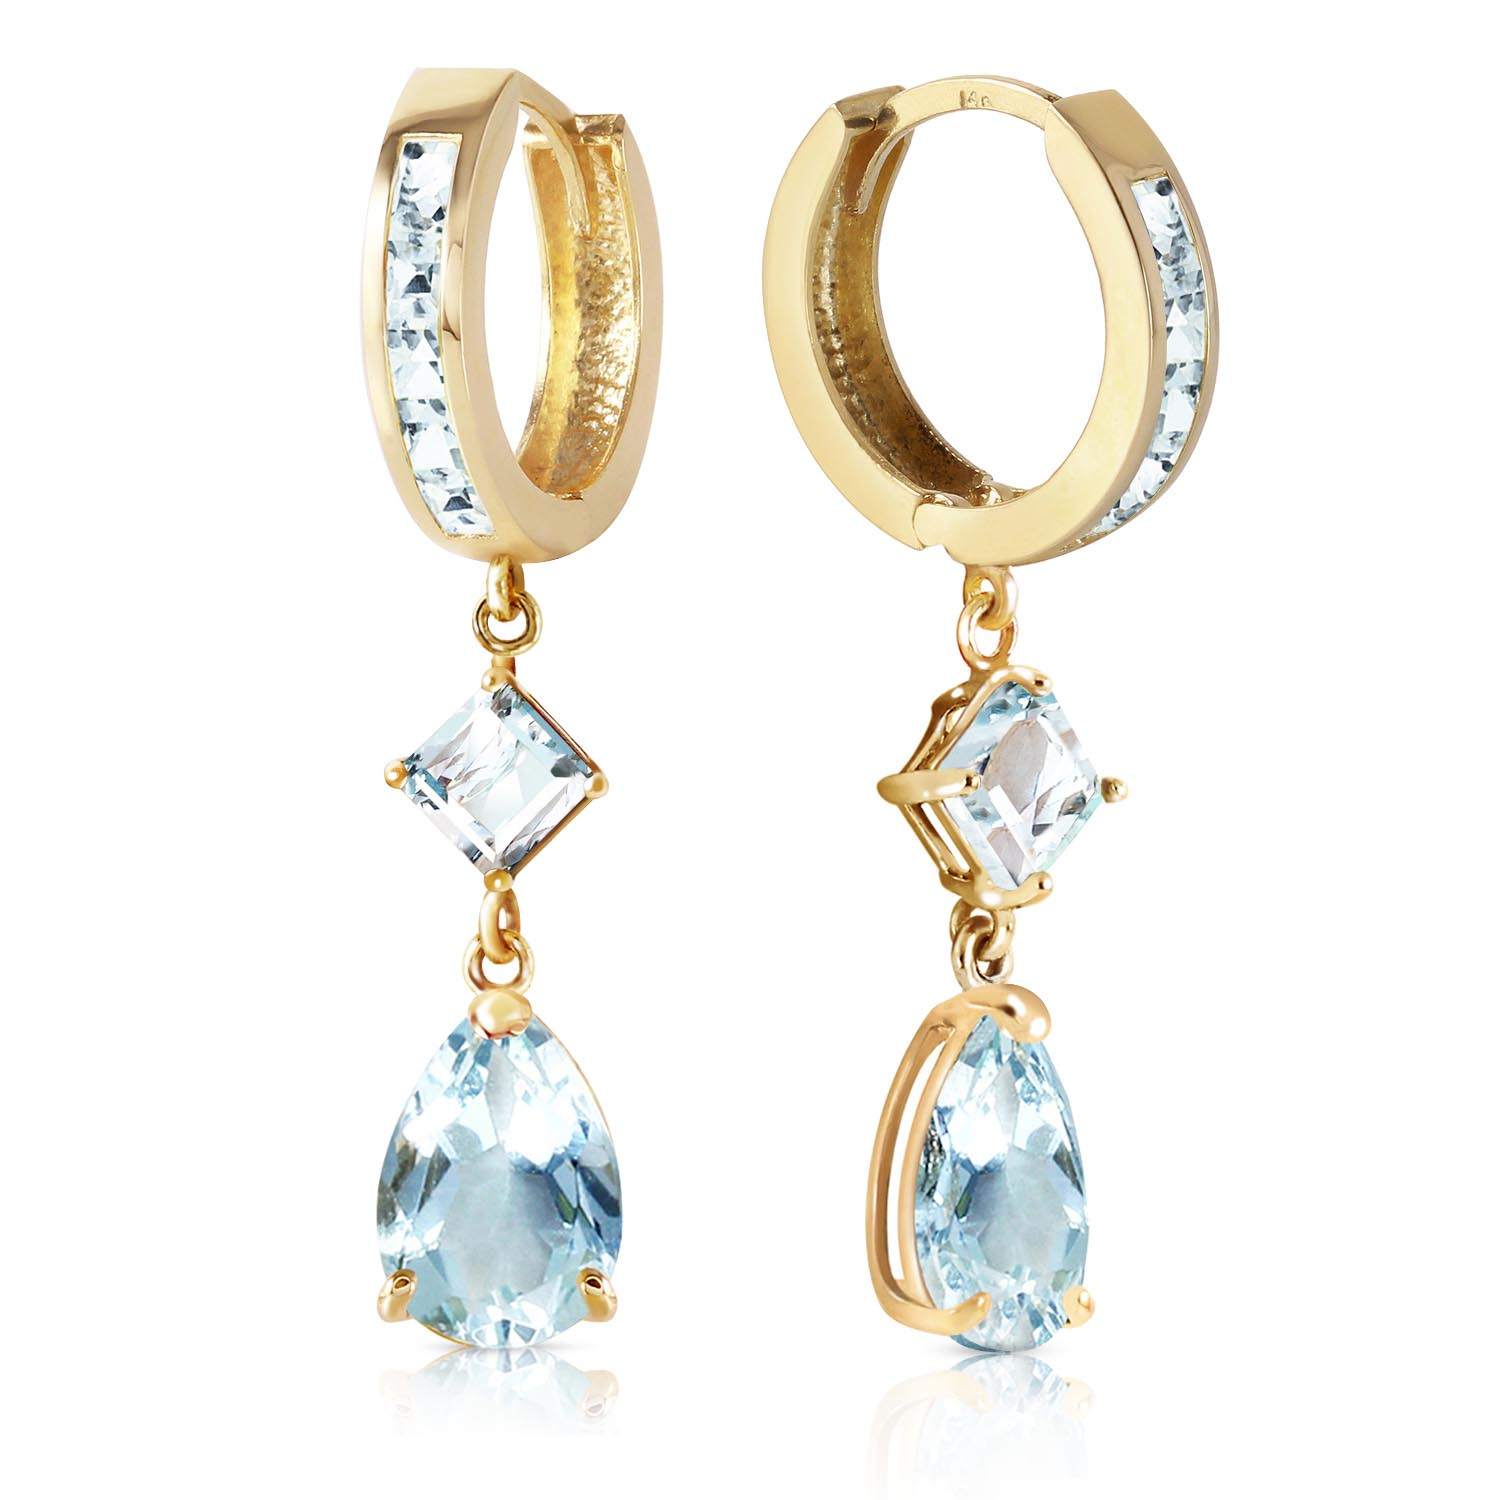 Aquamarine Droplet Huggie Earrings 5.62ctw in 9ct Gold